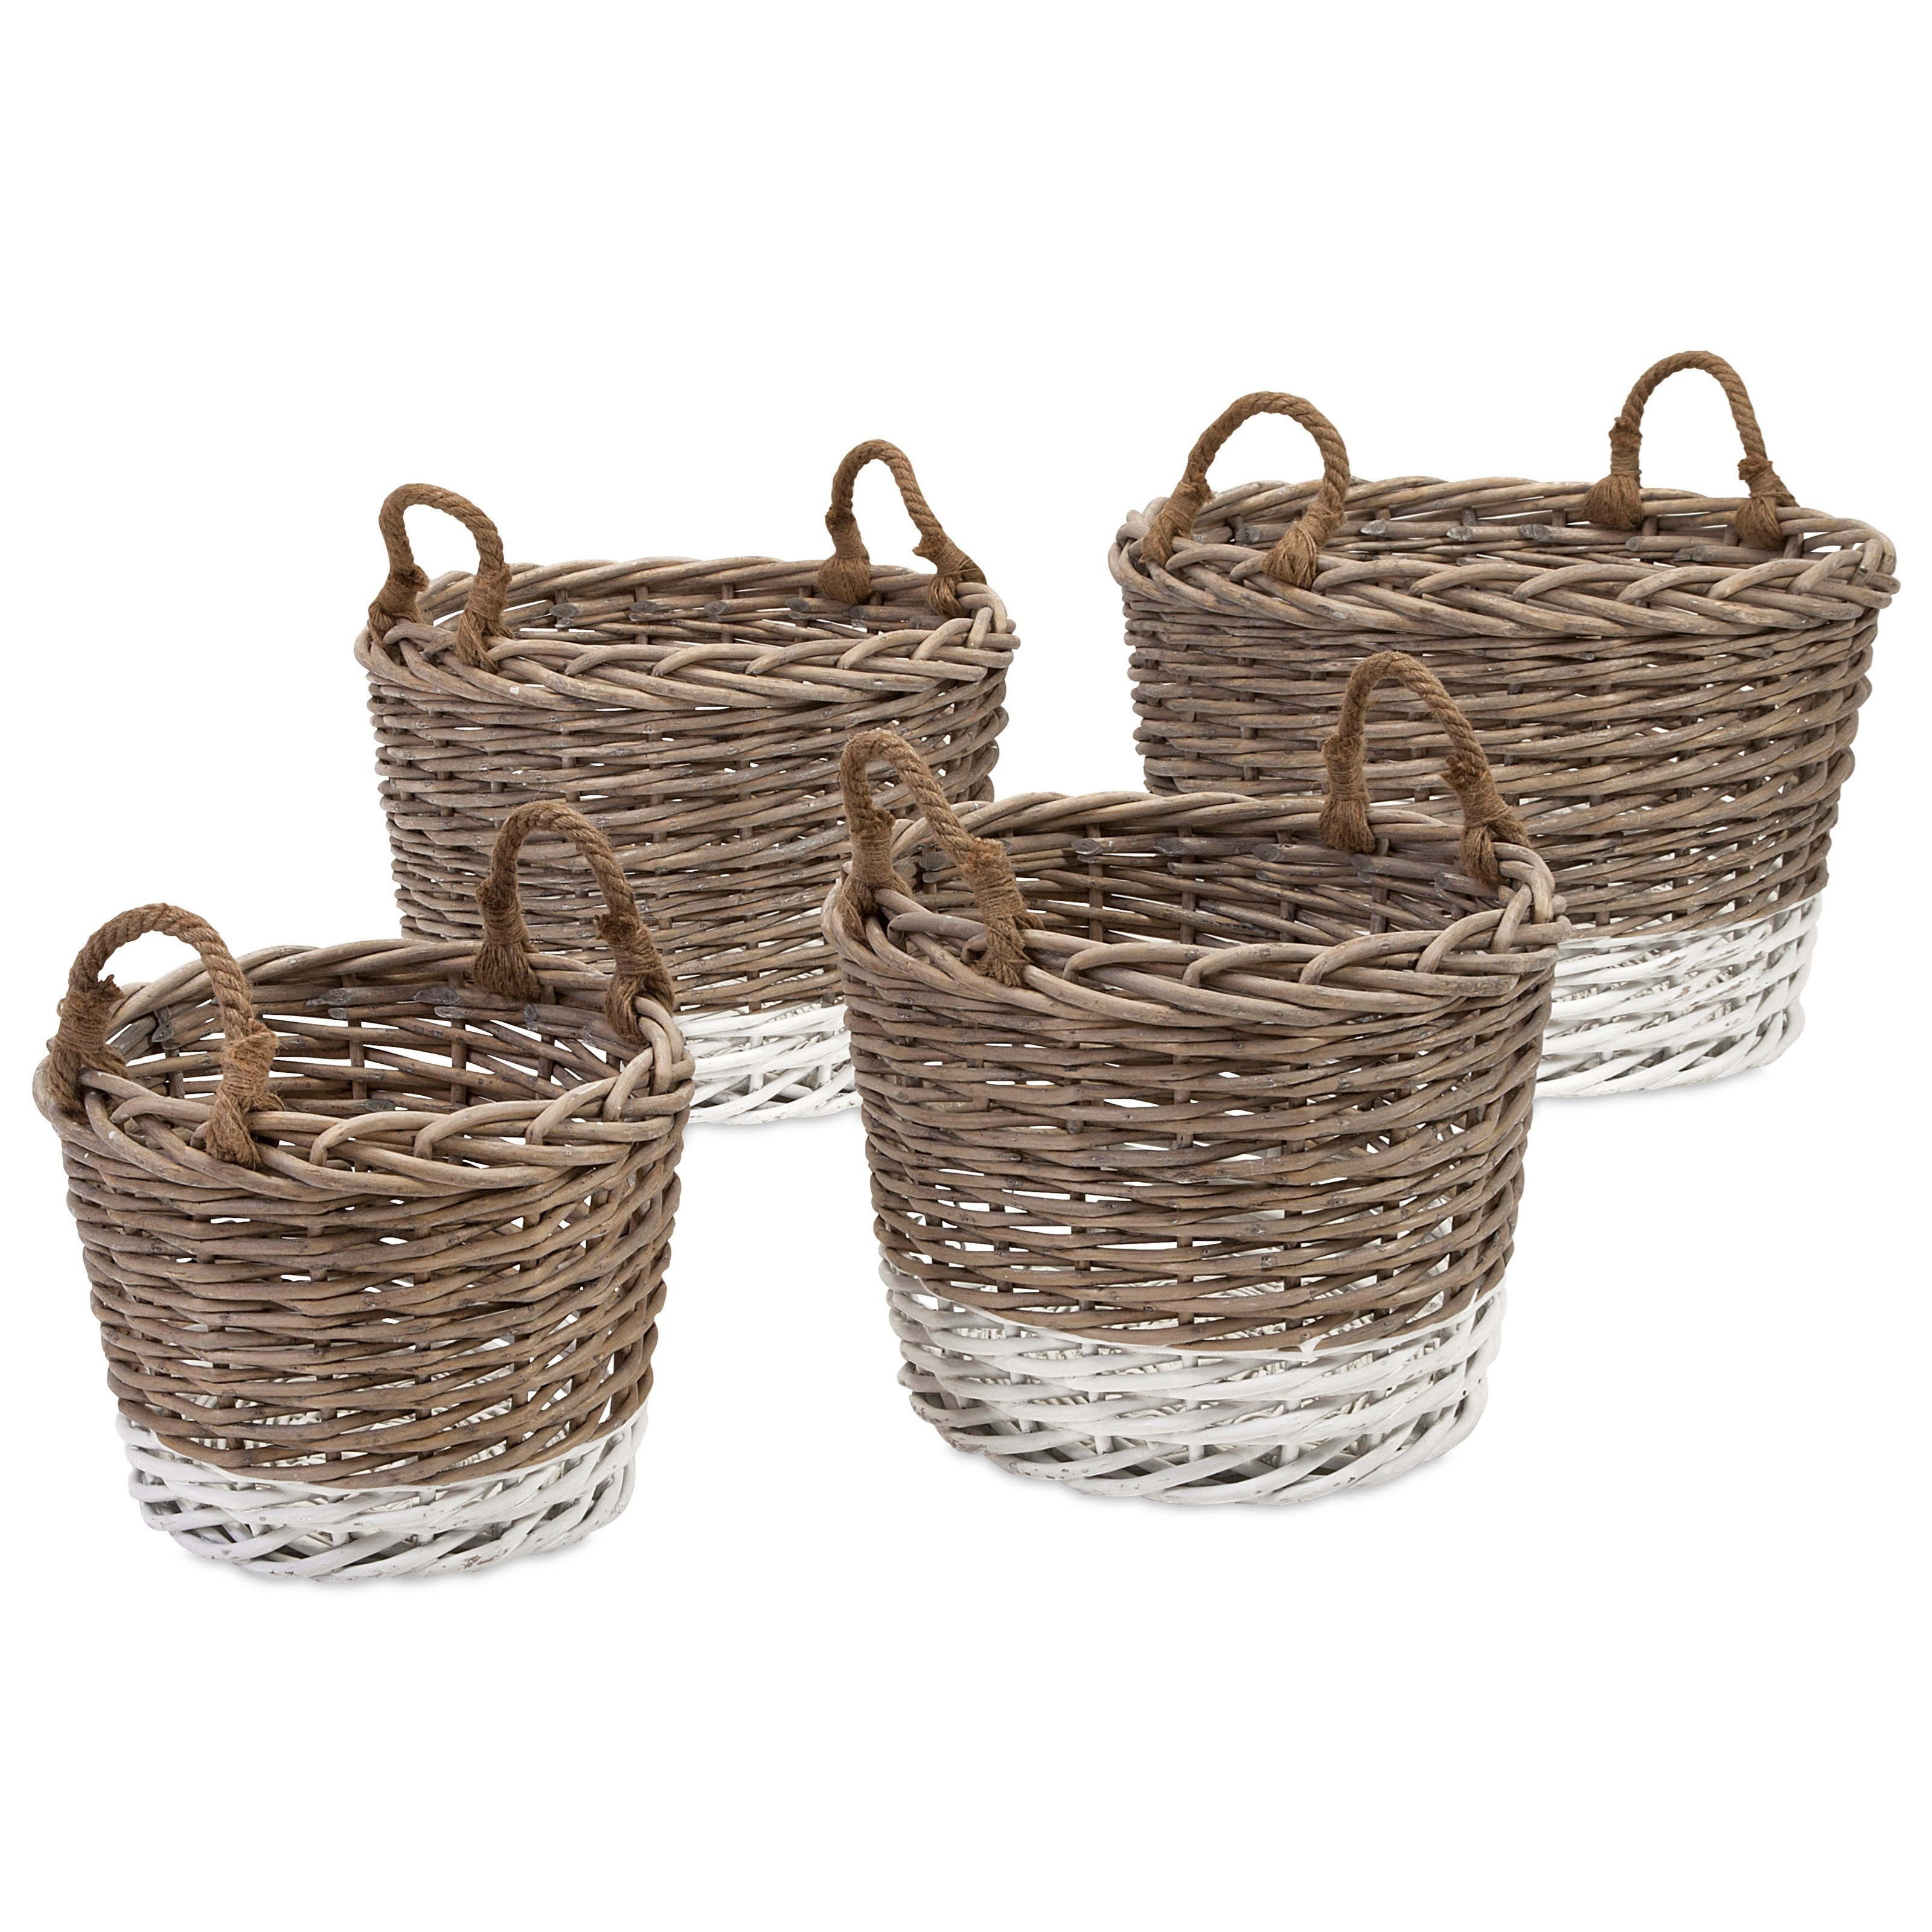 Baskets Danica Willow Baskets - Set of 4 by IMAX Worldwide Home at Alison Craig Home Furnishings